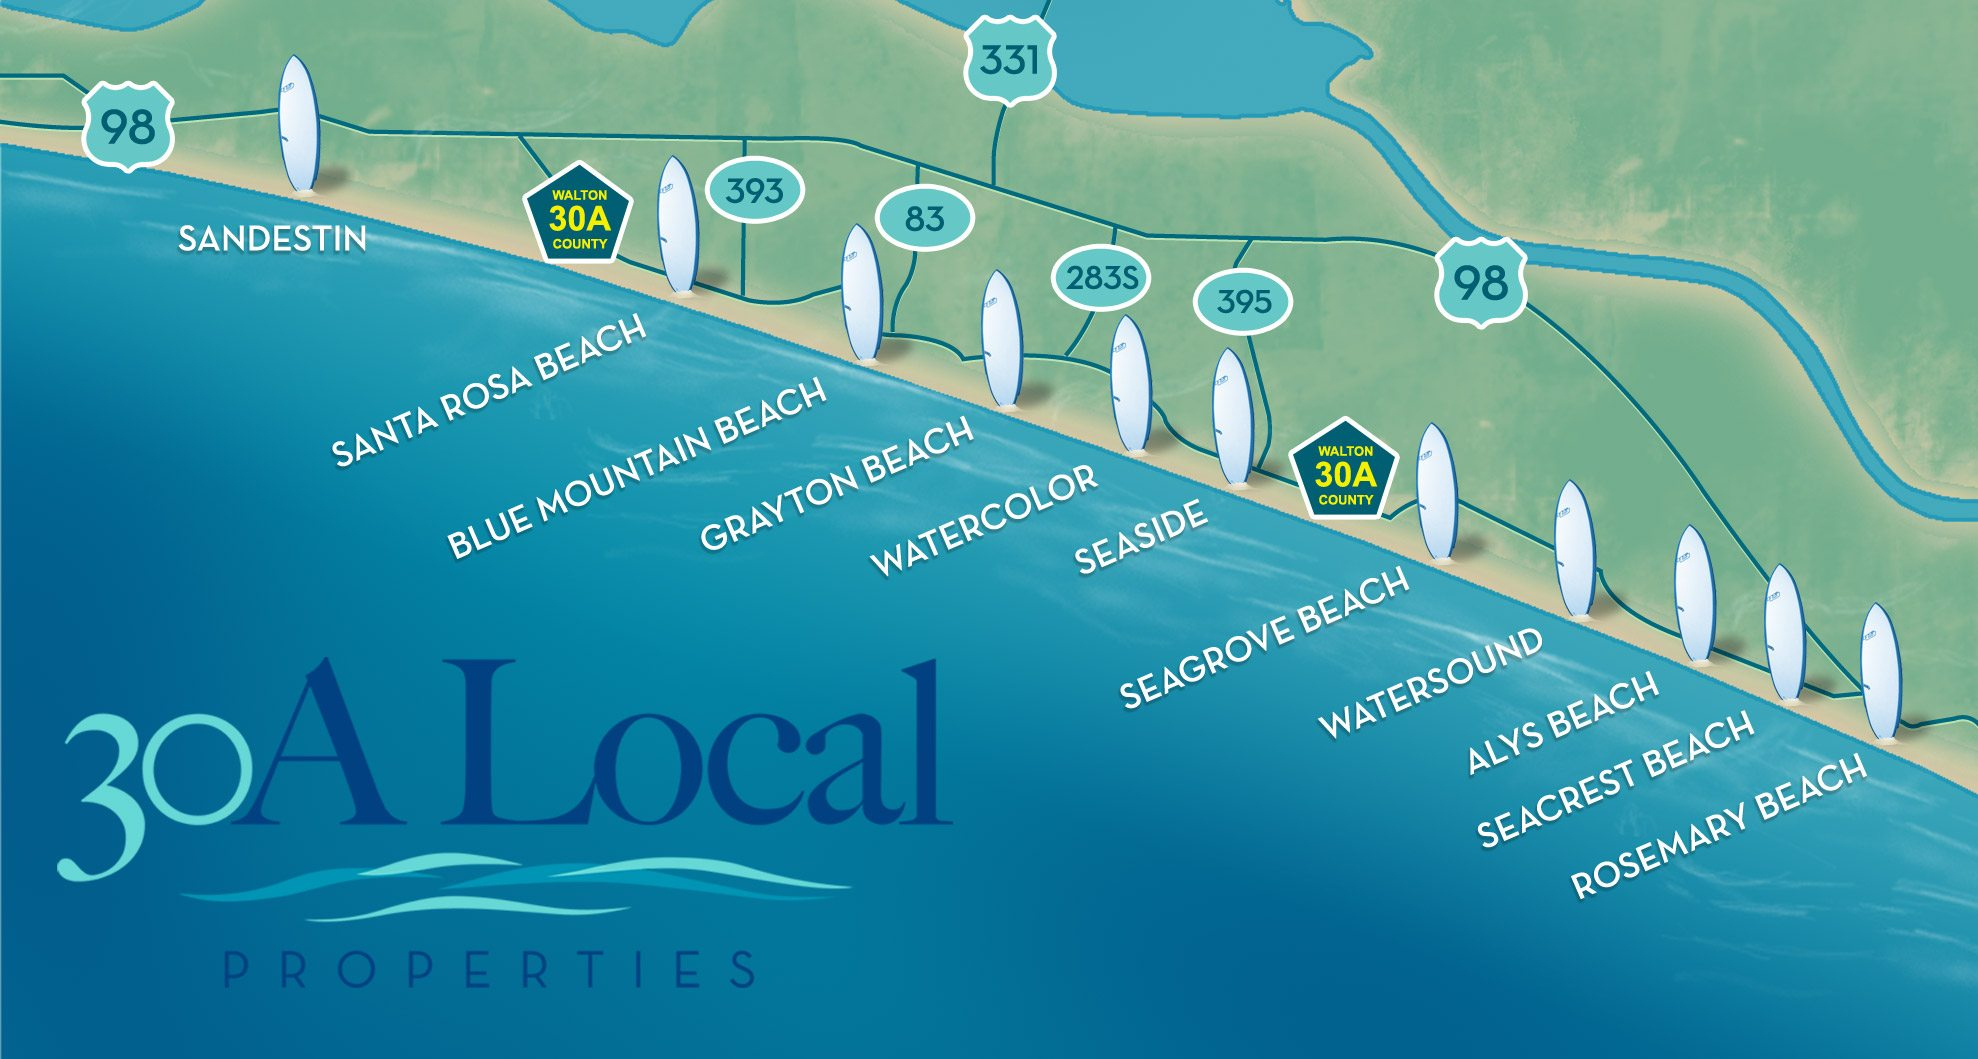 About The Communities Of 30-A Florida - Blue Mountain Beach Florida Map